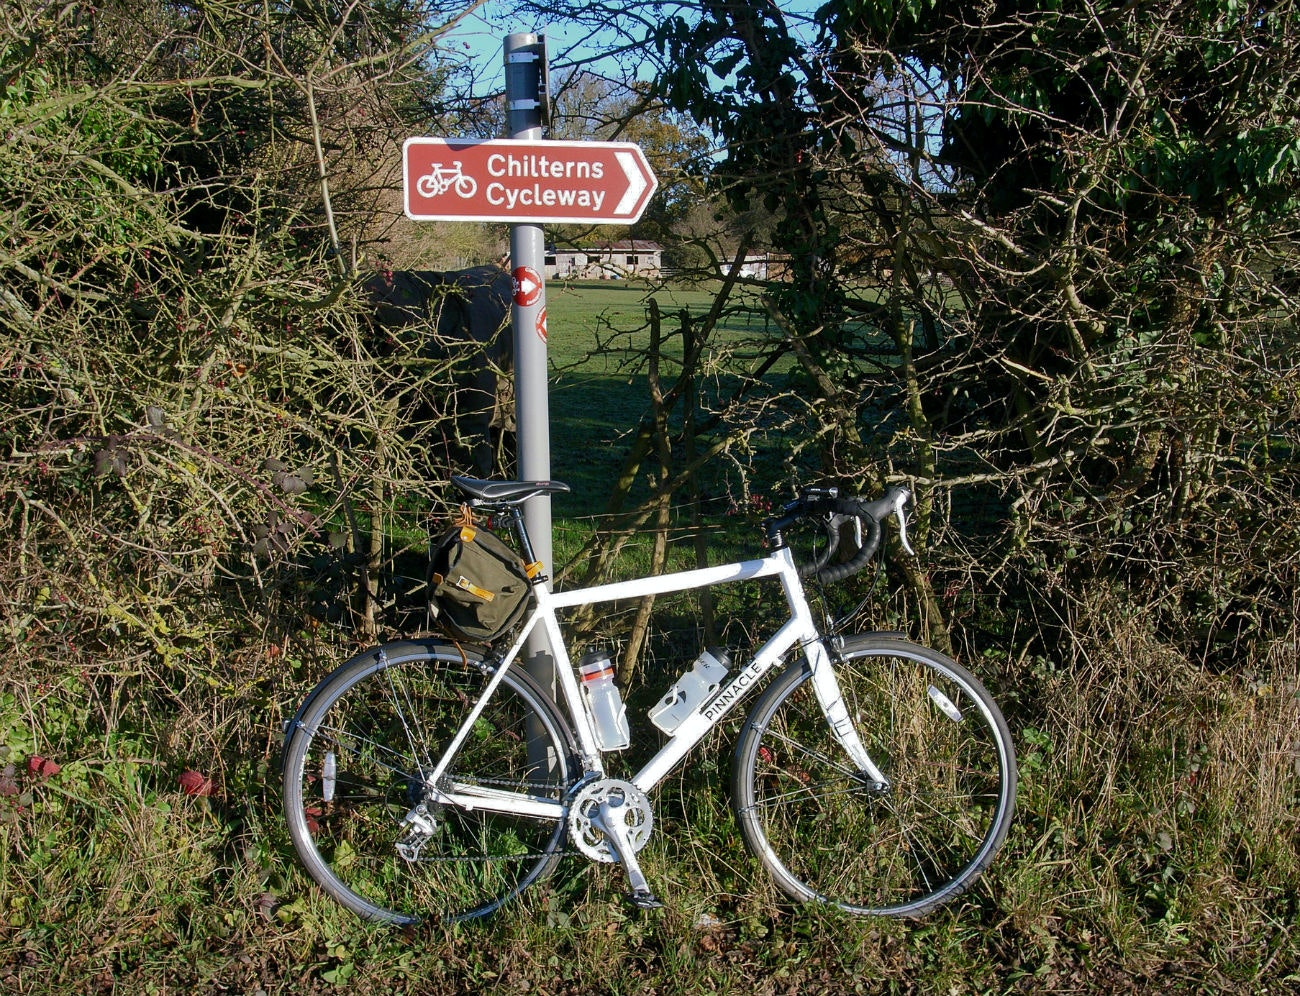 Chilterns Cycleway, touring (Pic: Steve Cadman / Creative Commons)